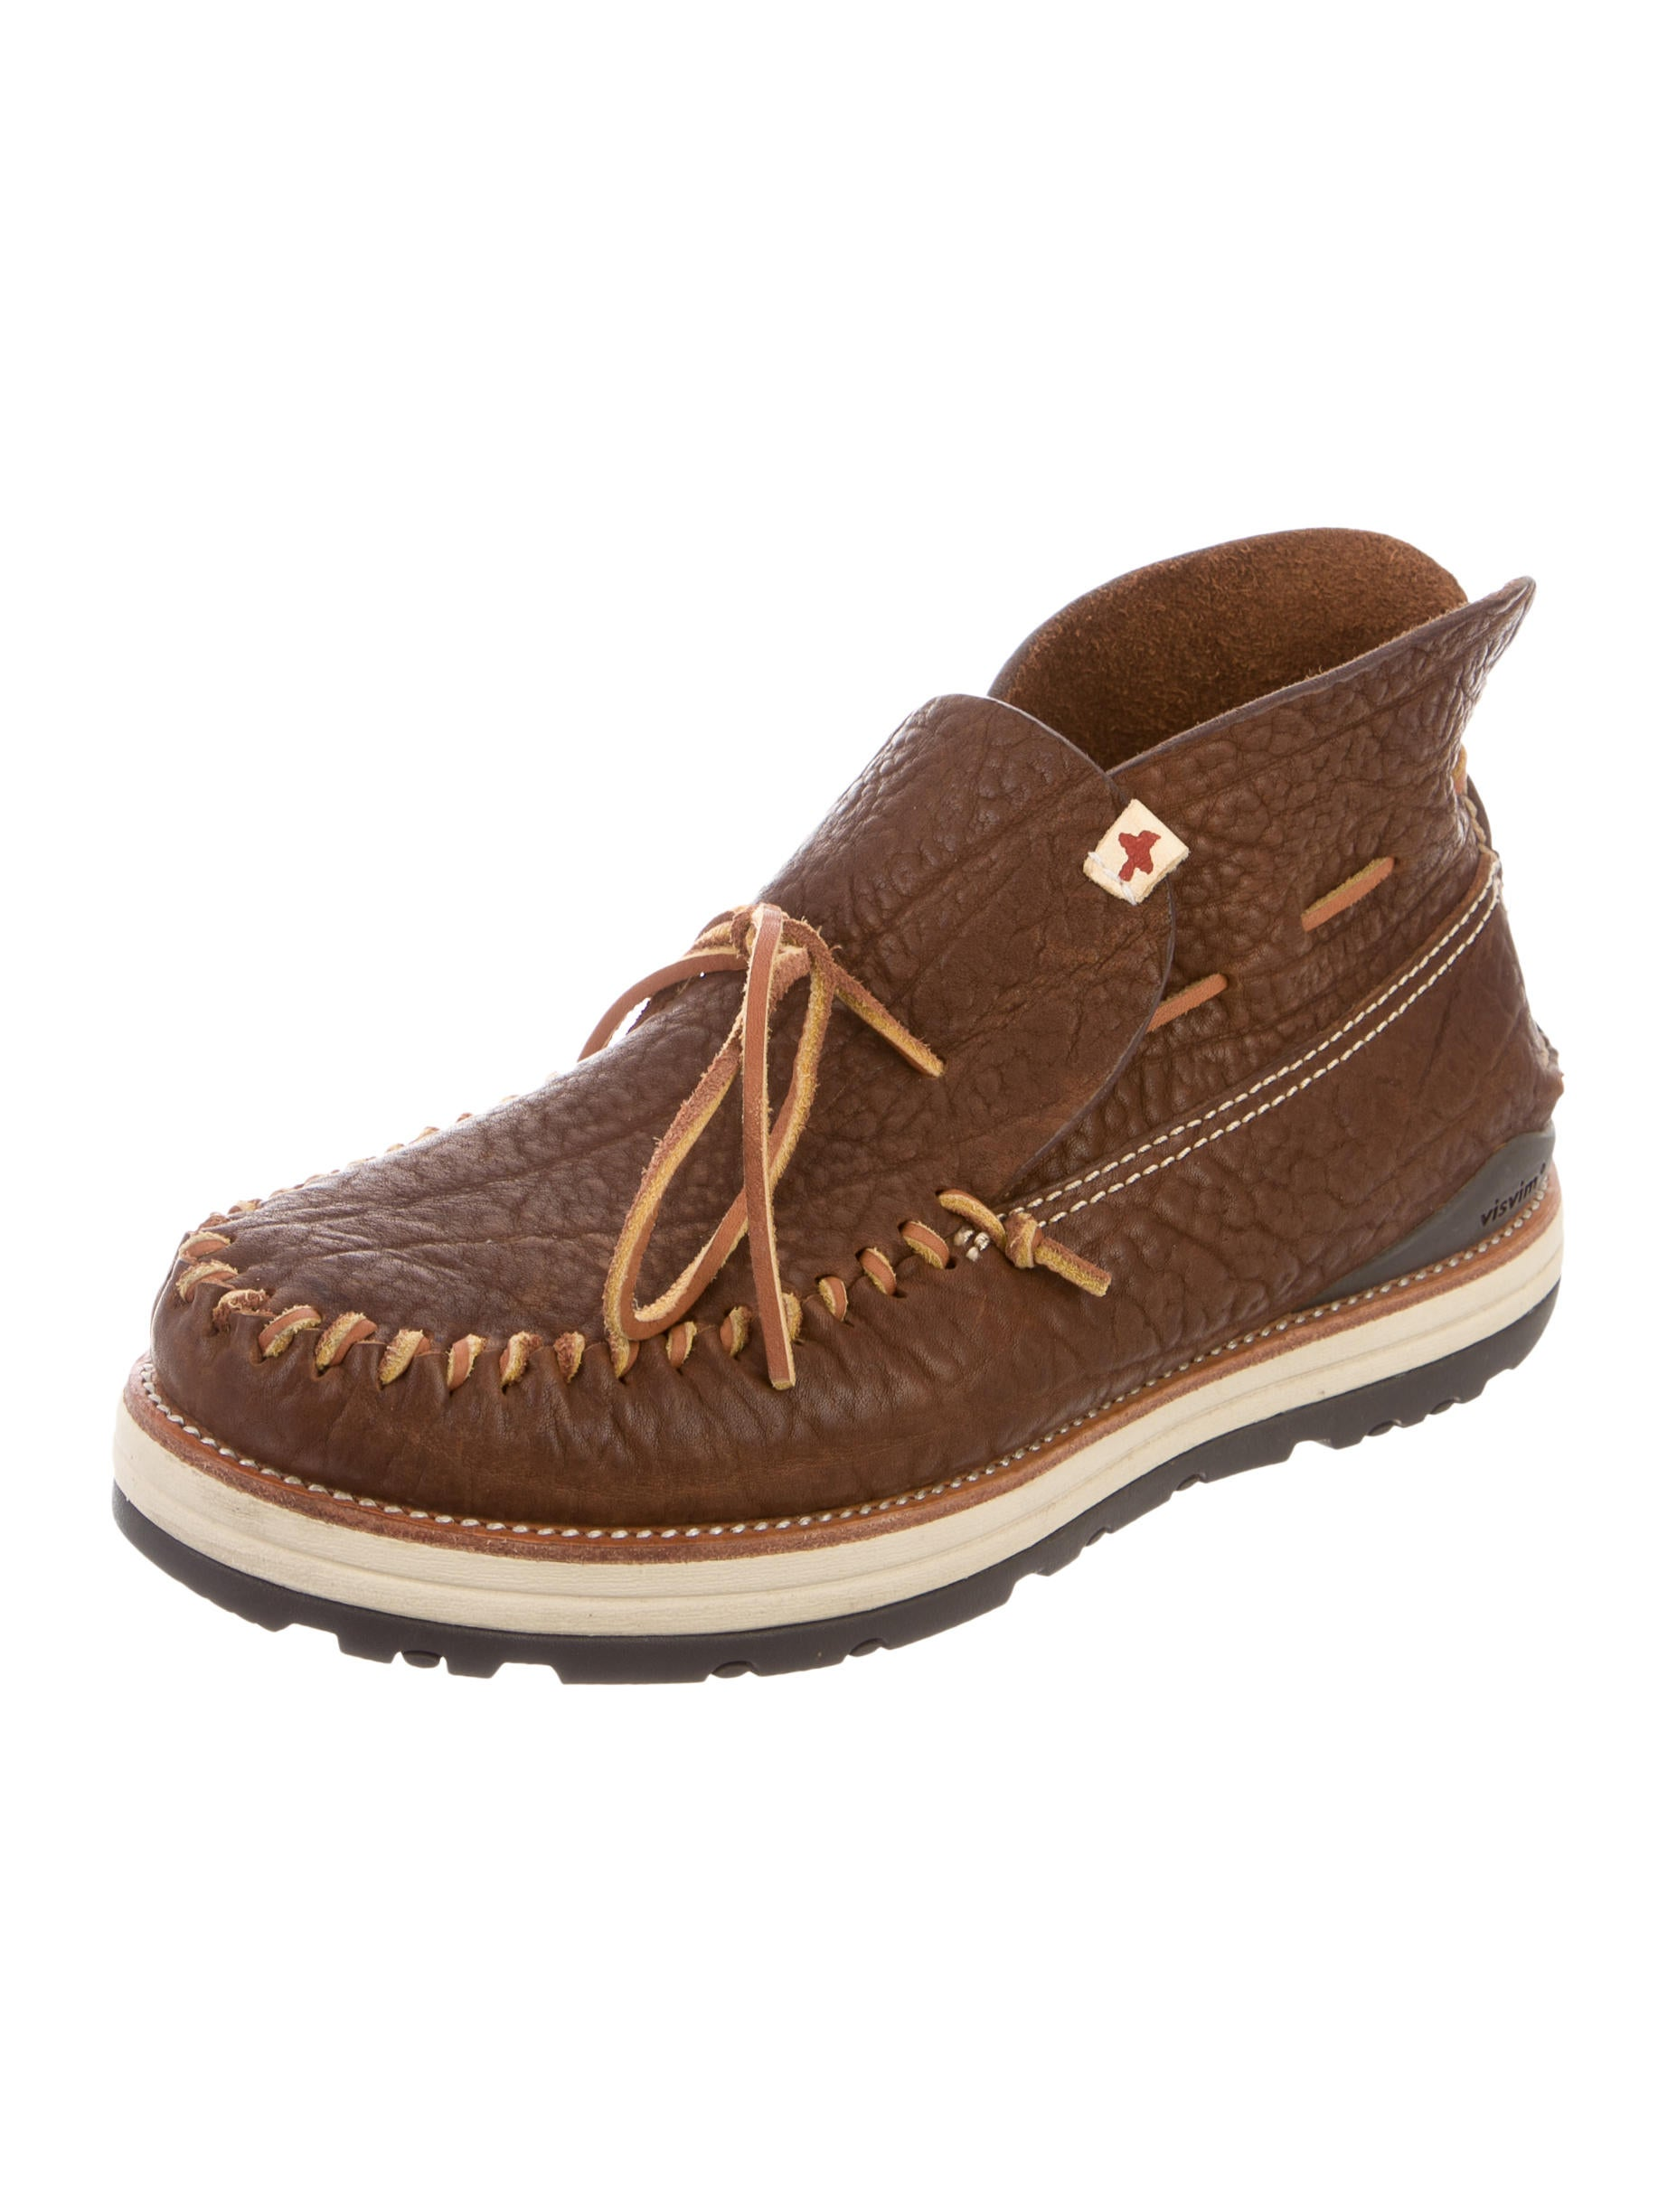 Visvim Leather Boat Shoes Shoes Vsm20230 The Realreal